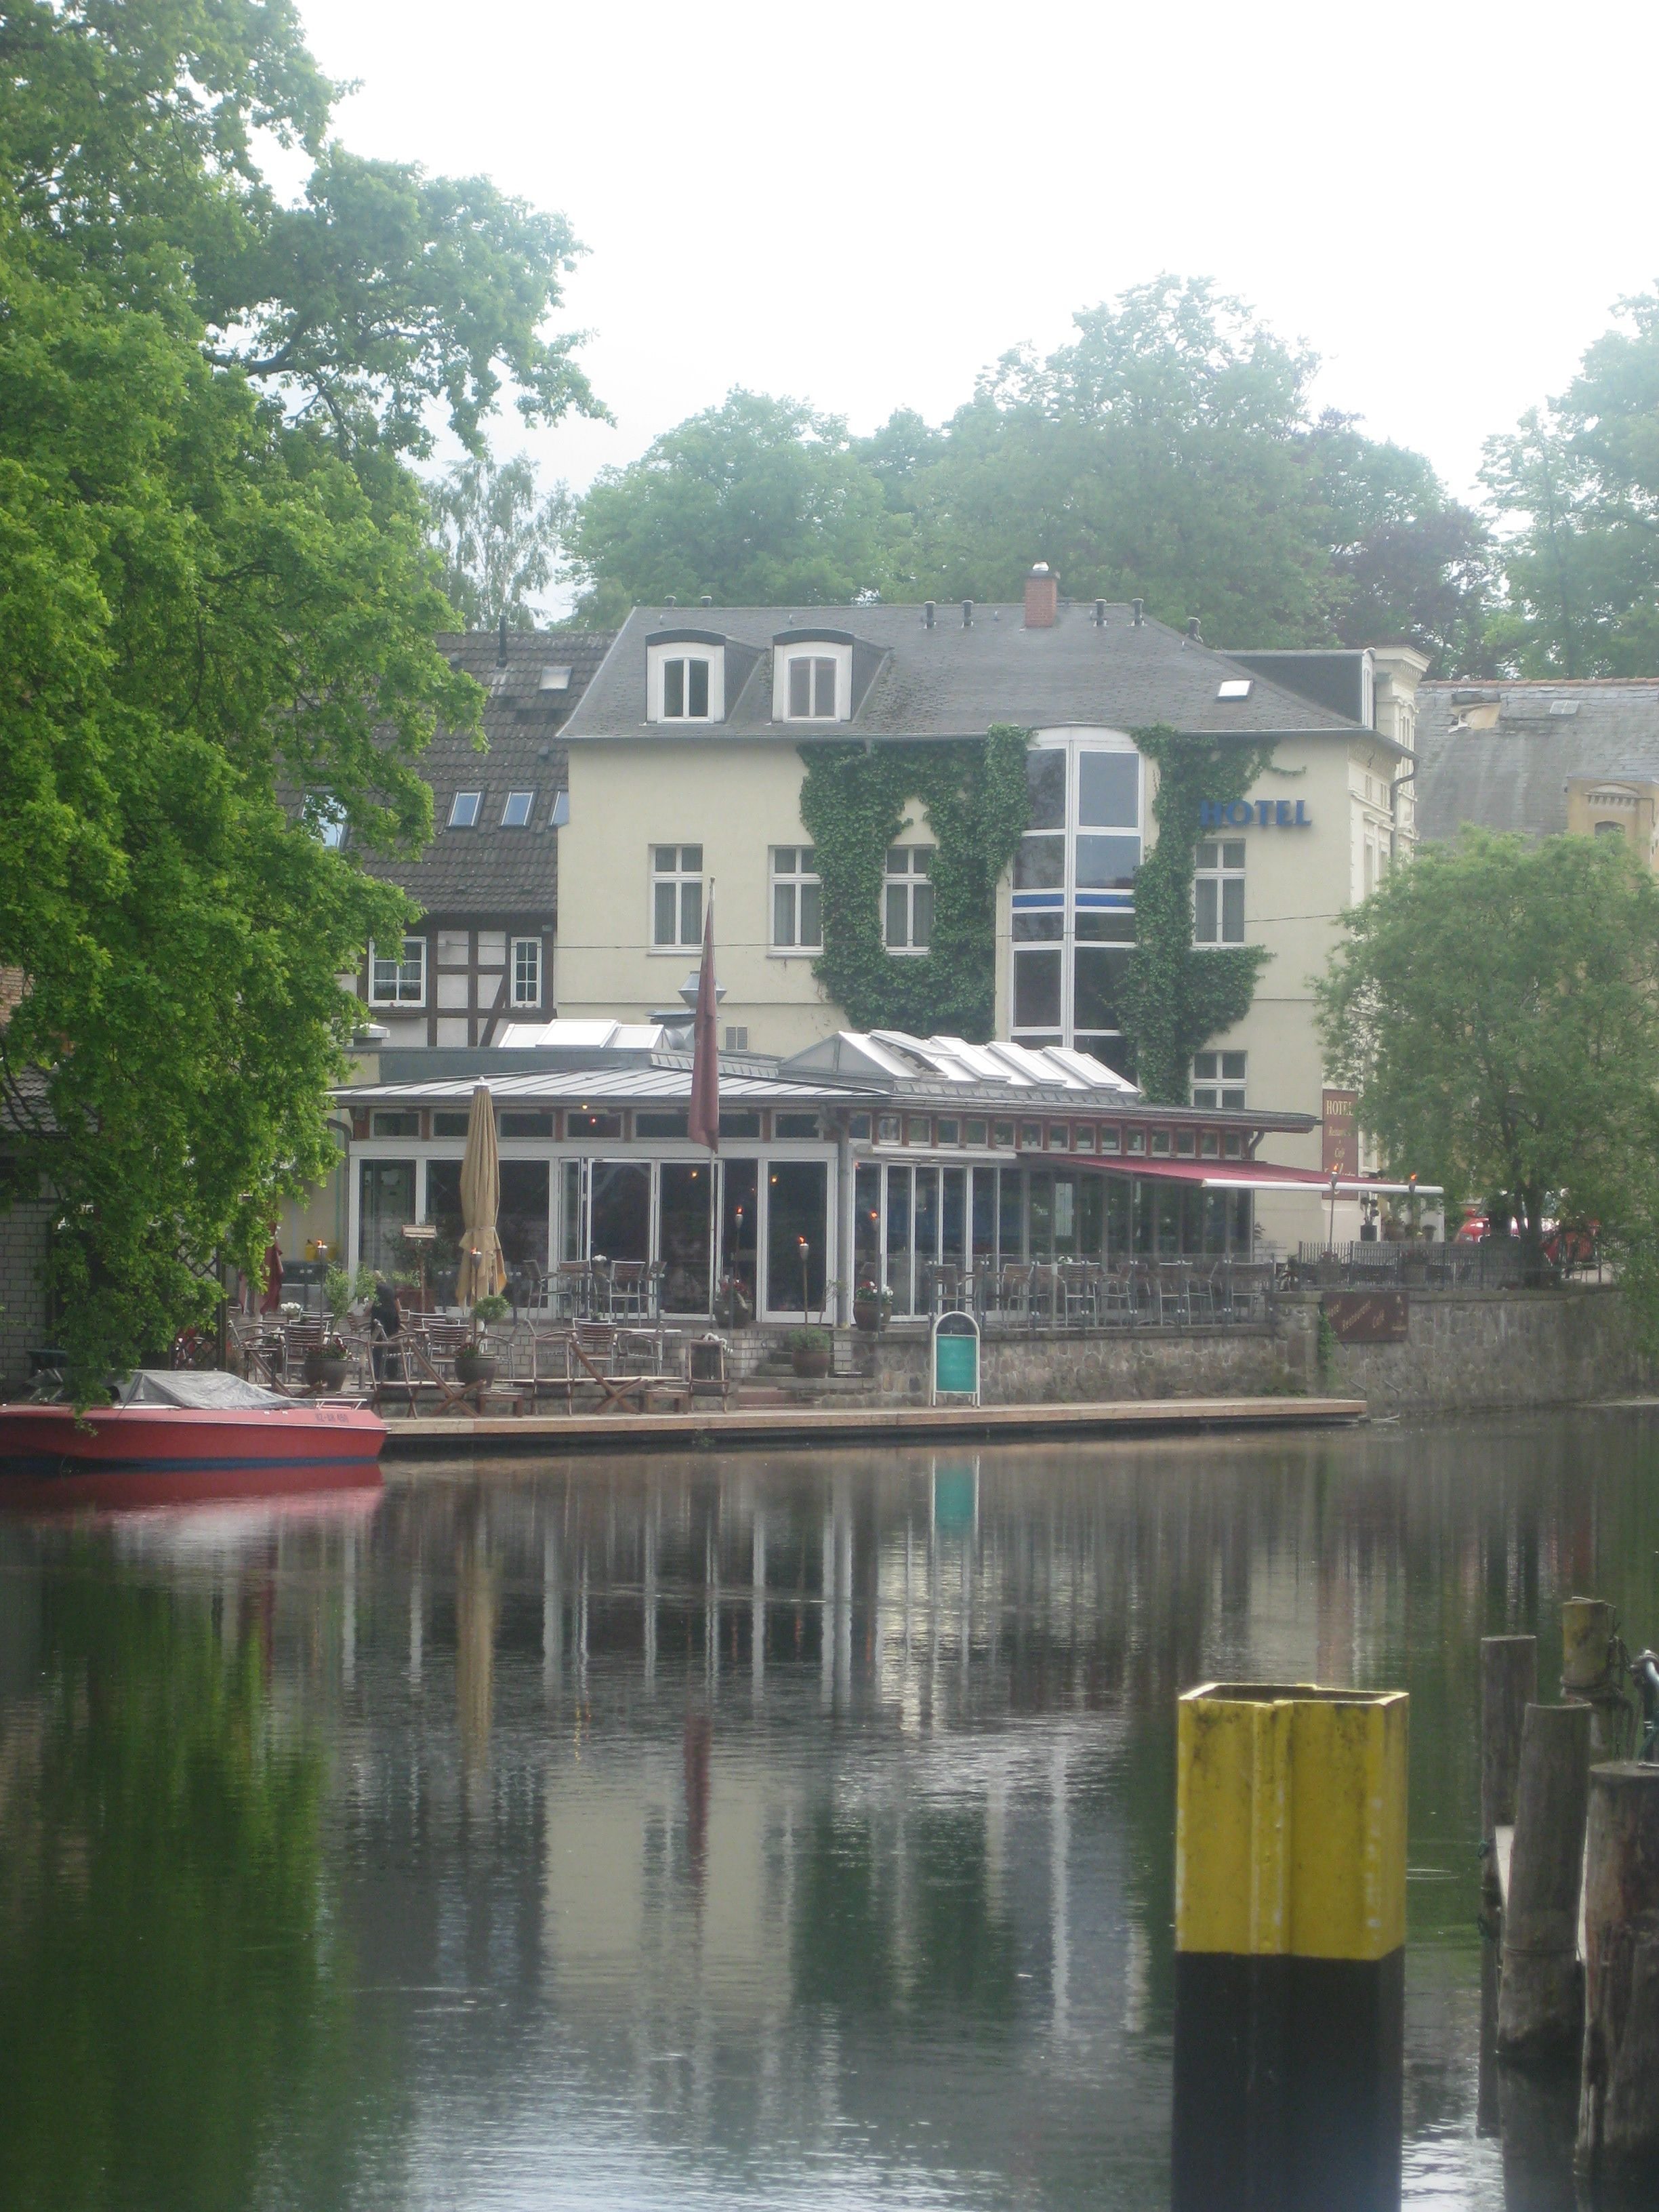 Along the Canal in Plau Am See, Germany. Places, Plau am